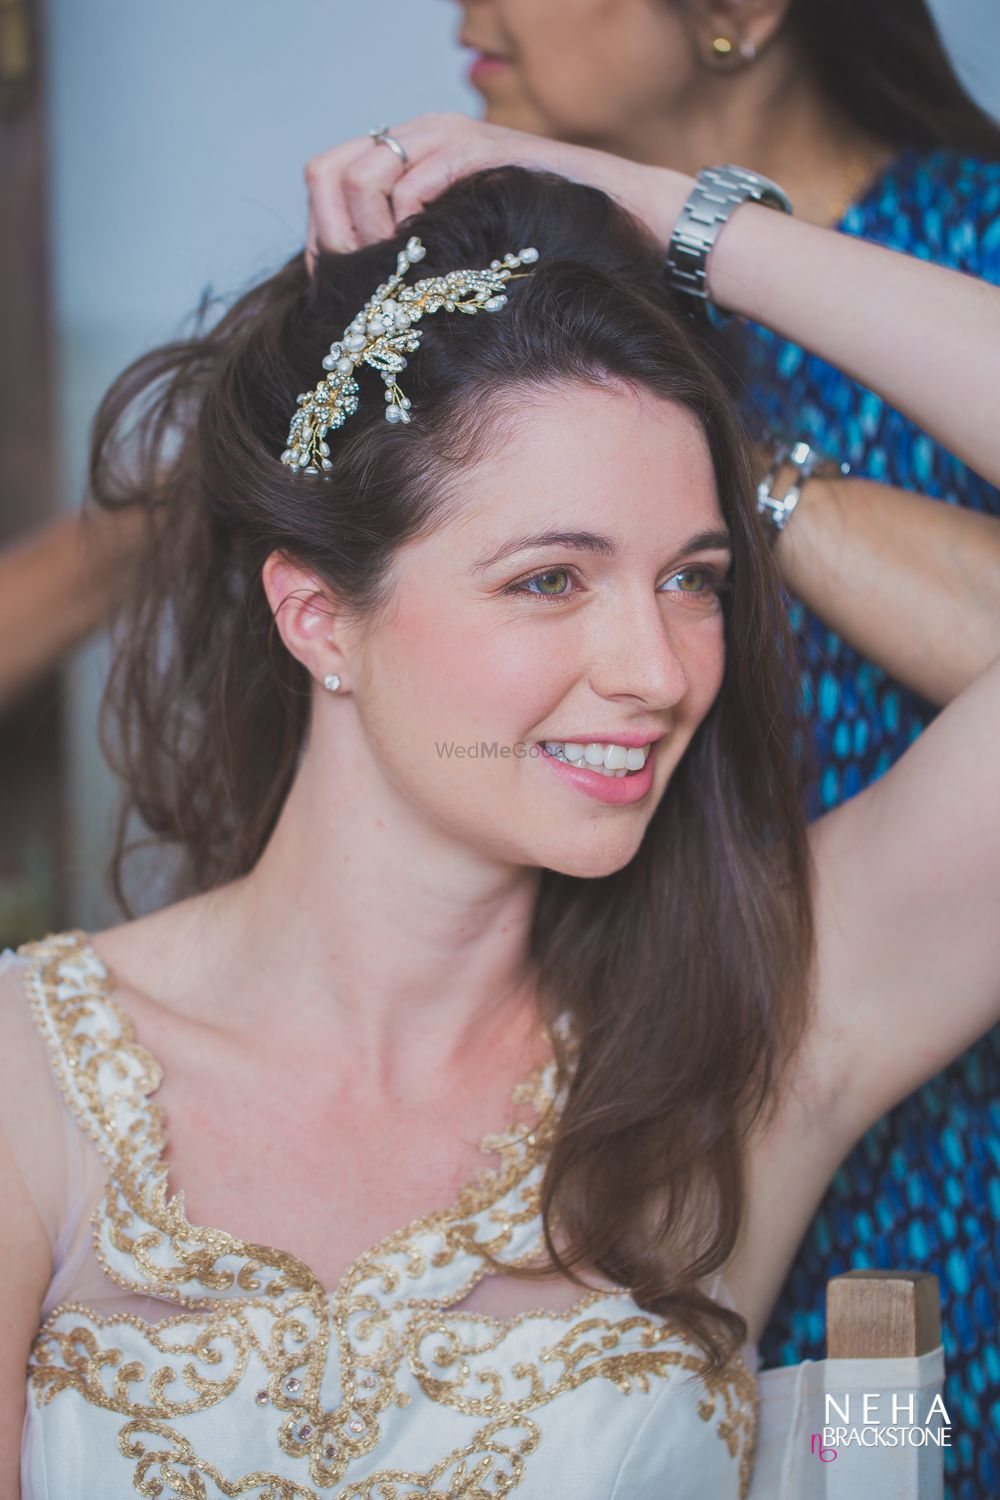 Photo of Engagement hair accessory with embellishment